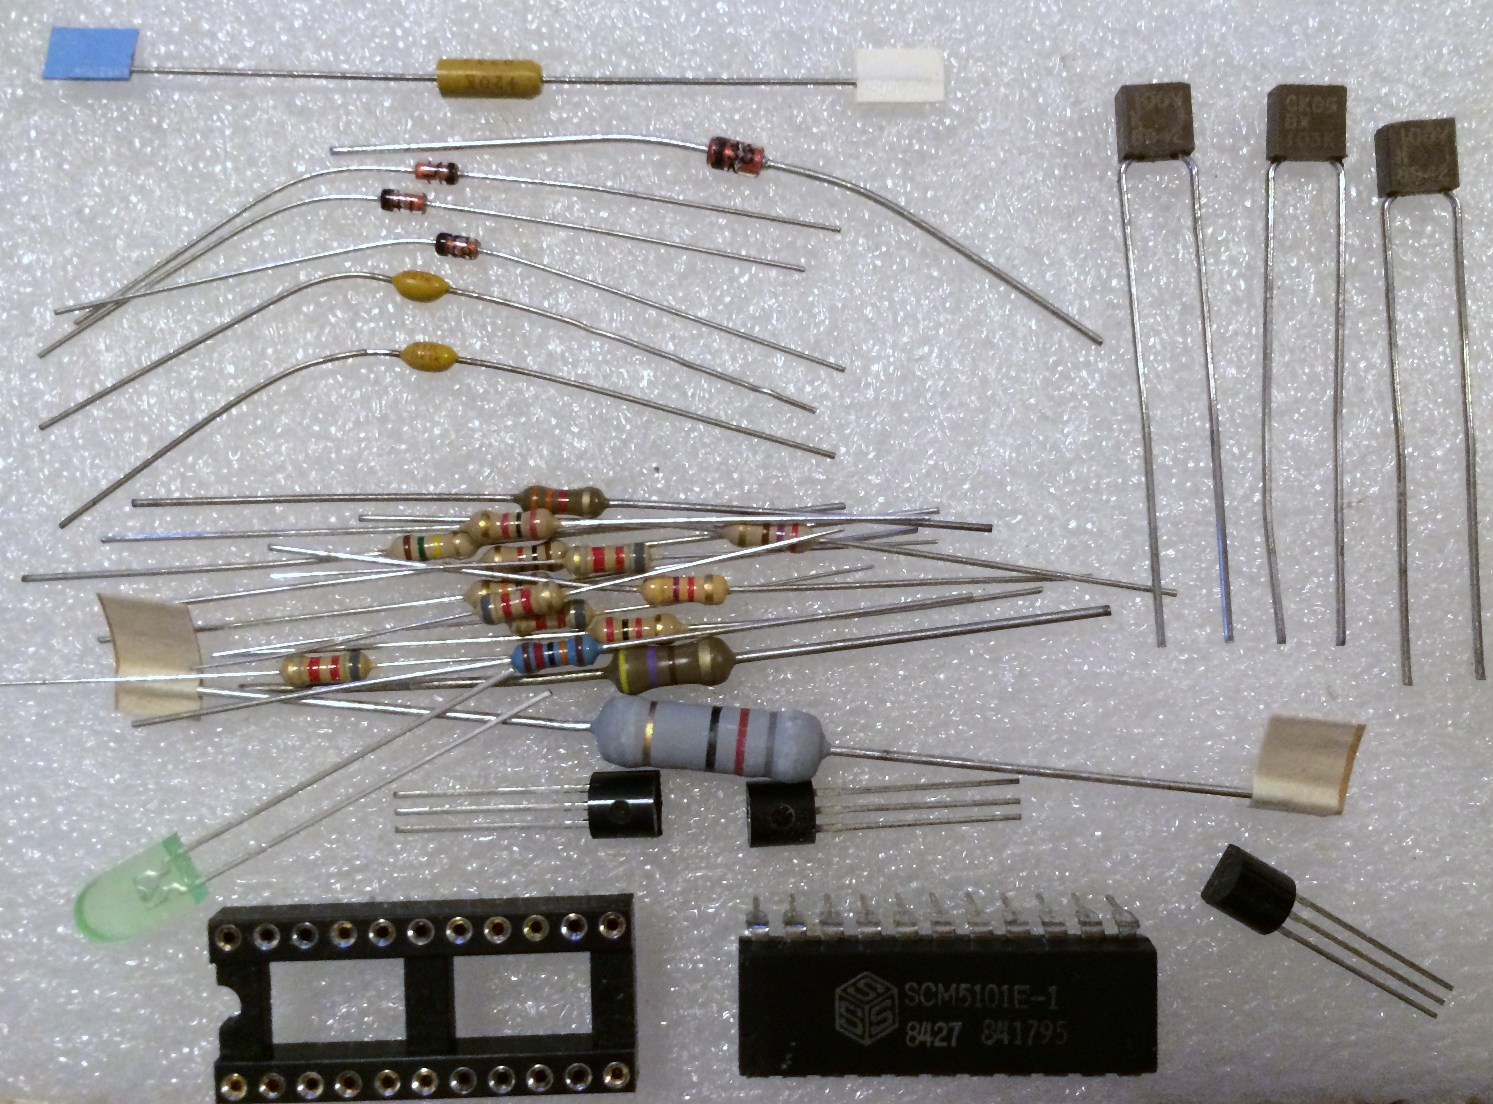 Big Daddys Bally Pinball Repair Kits Solution The 1uf Capacitor And 2uf Combine In Stern Mpu Board Corrosion Kit